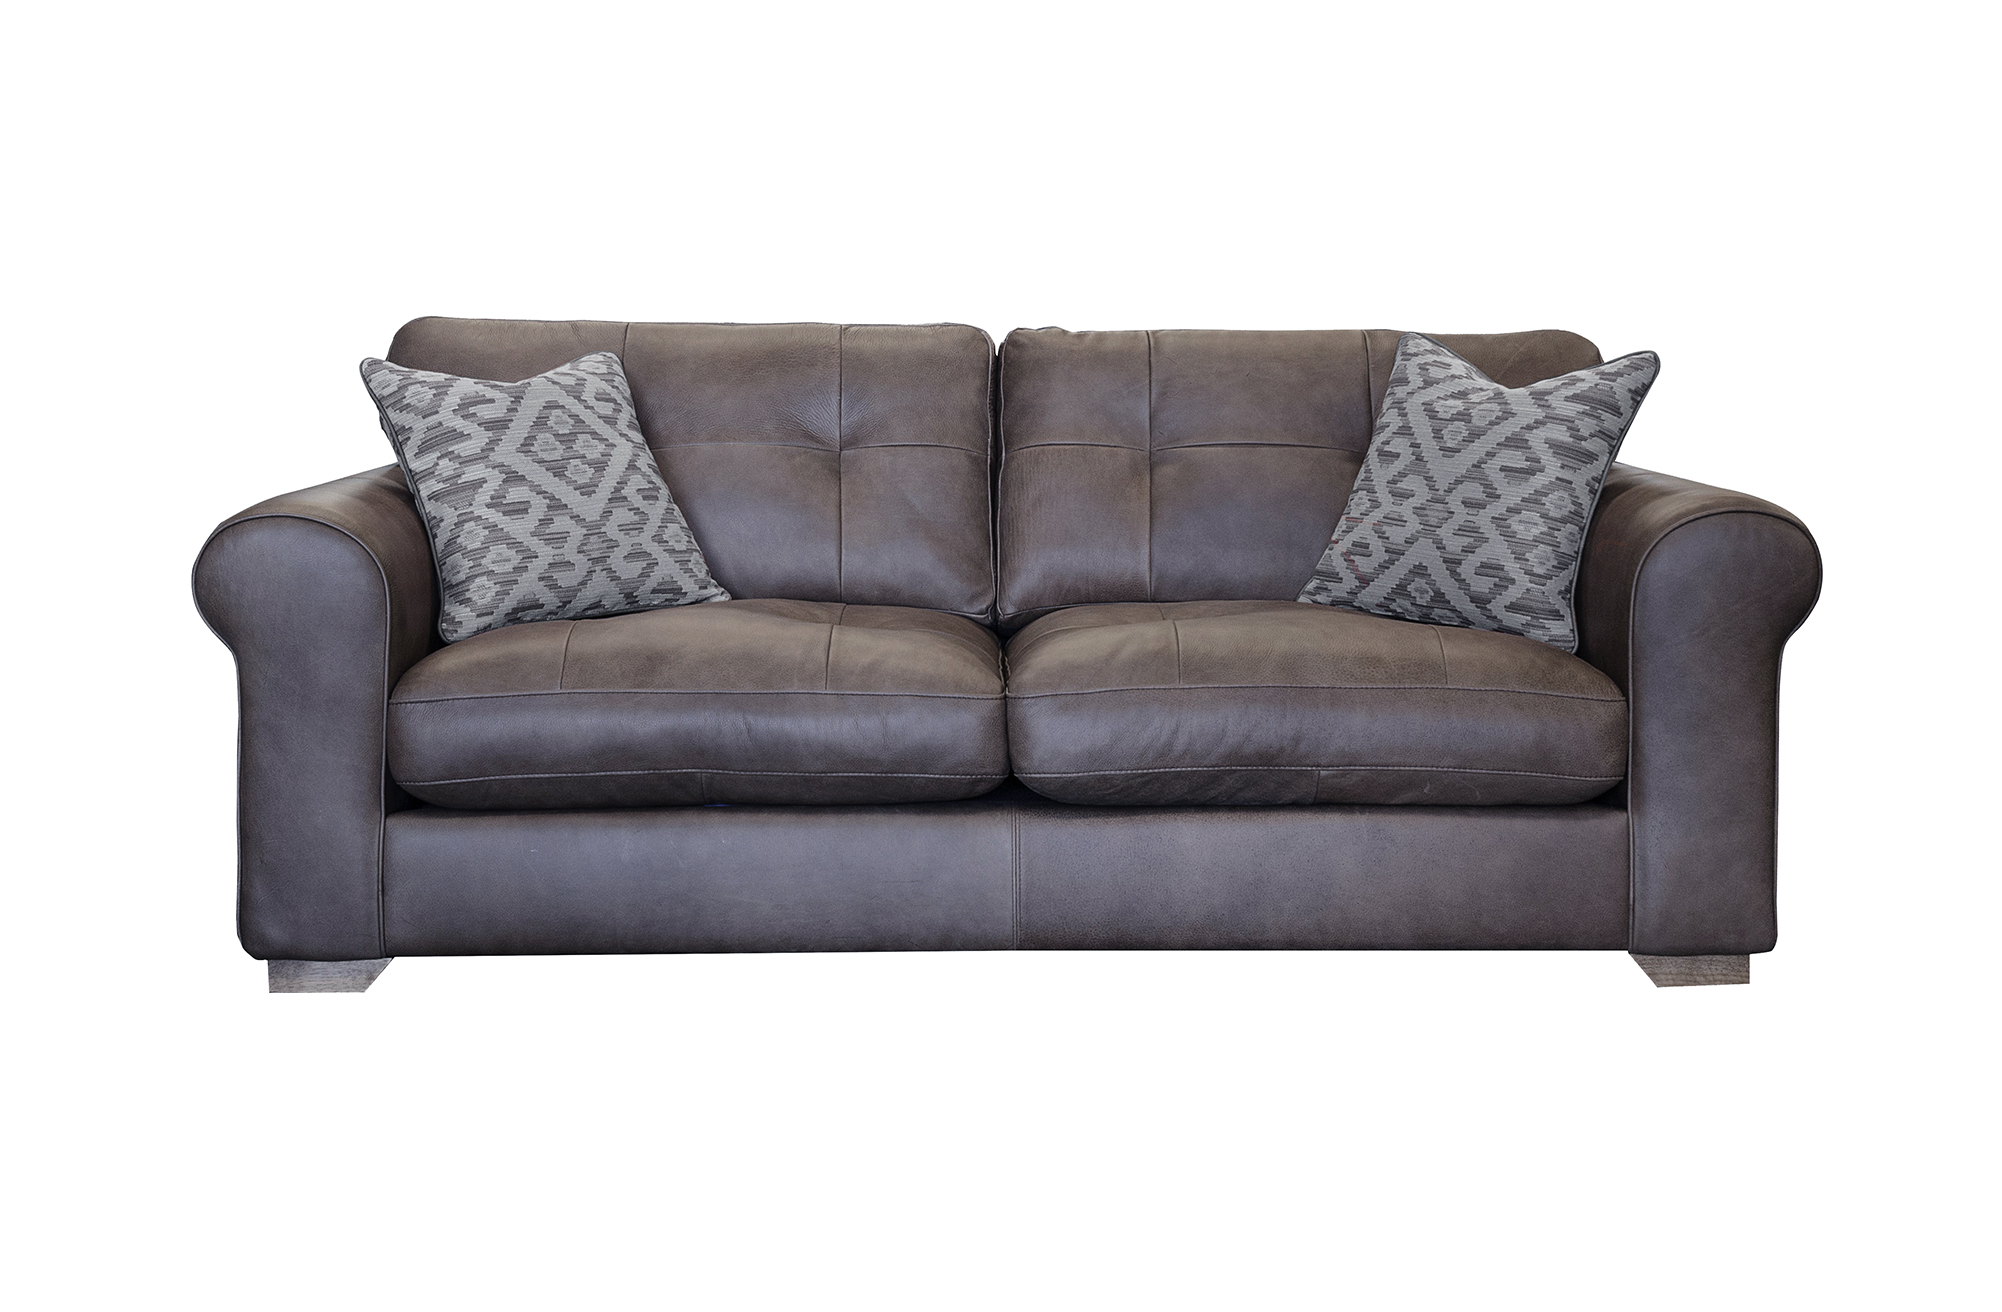 Pemberly Midi Sofa